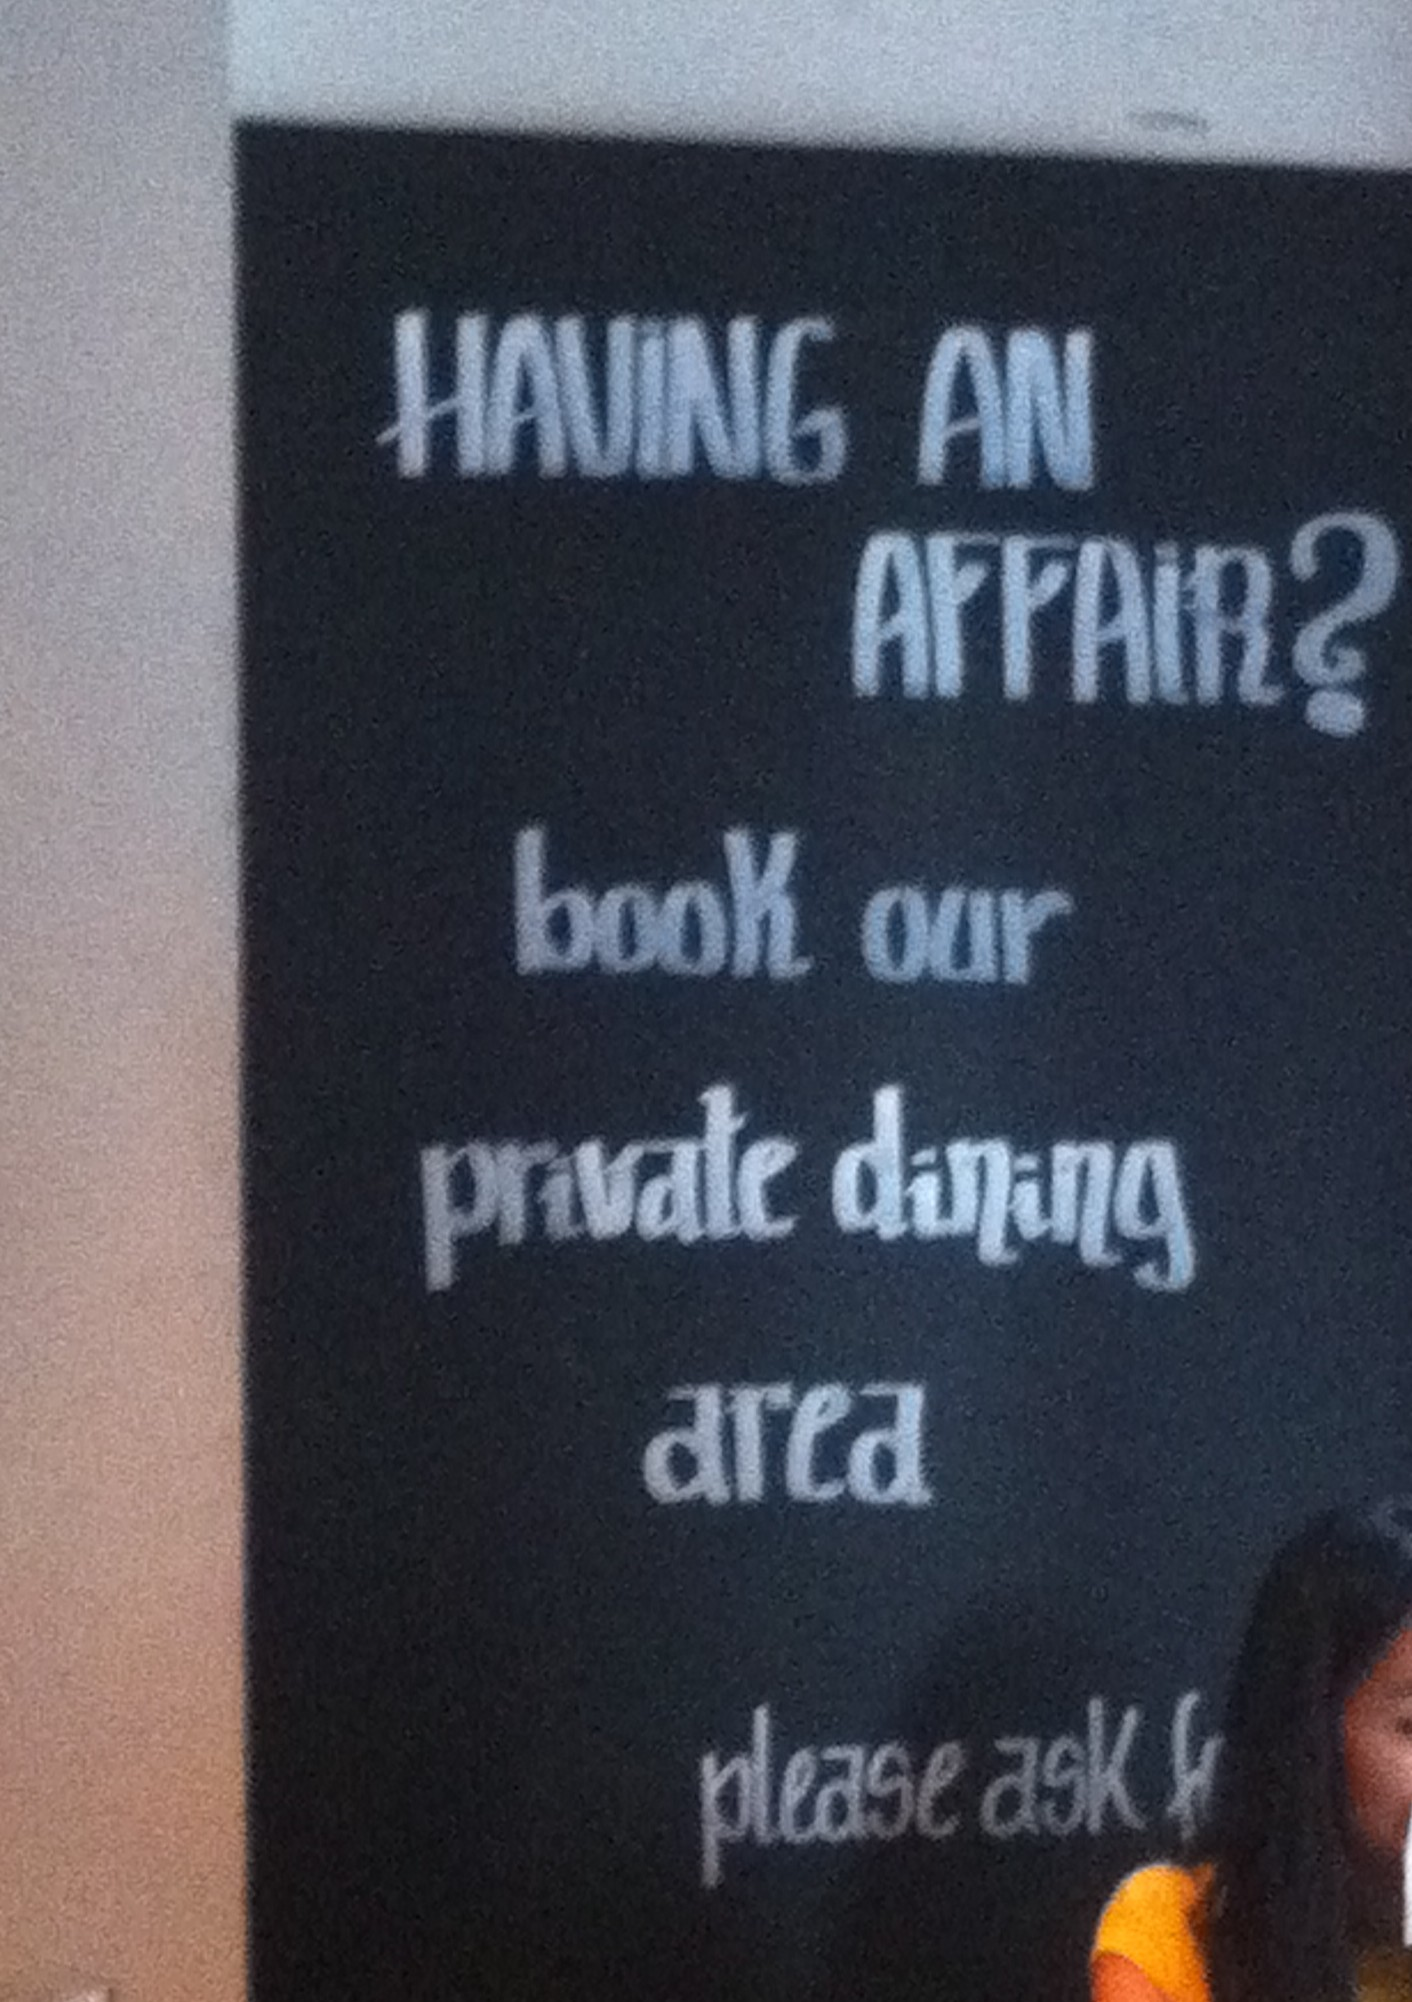 Having an affair? This restaurant has the solution to your dining-out dilemmas